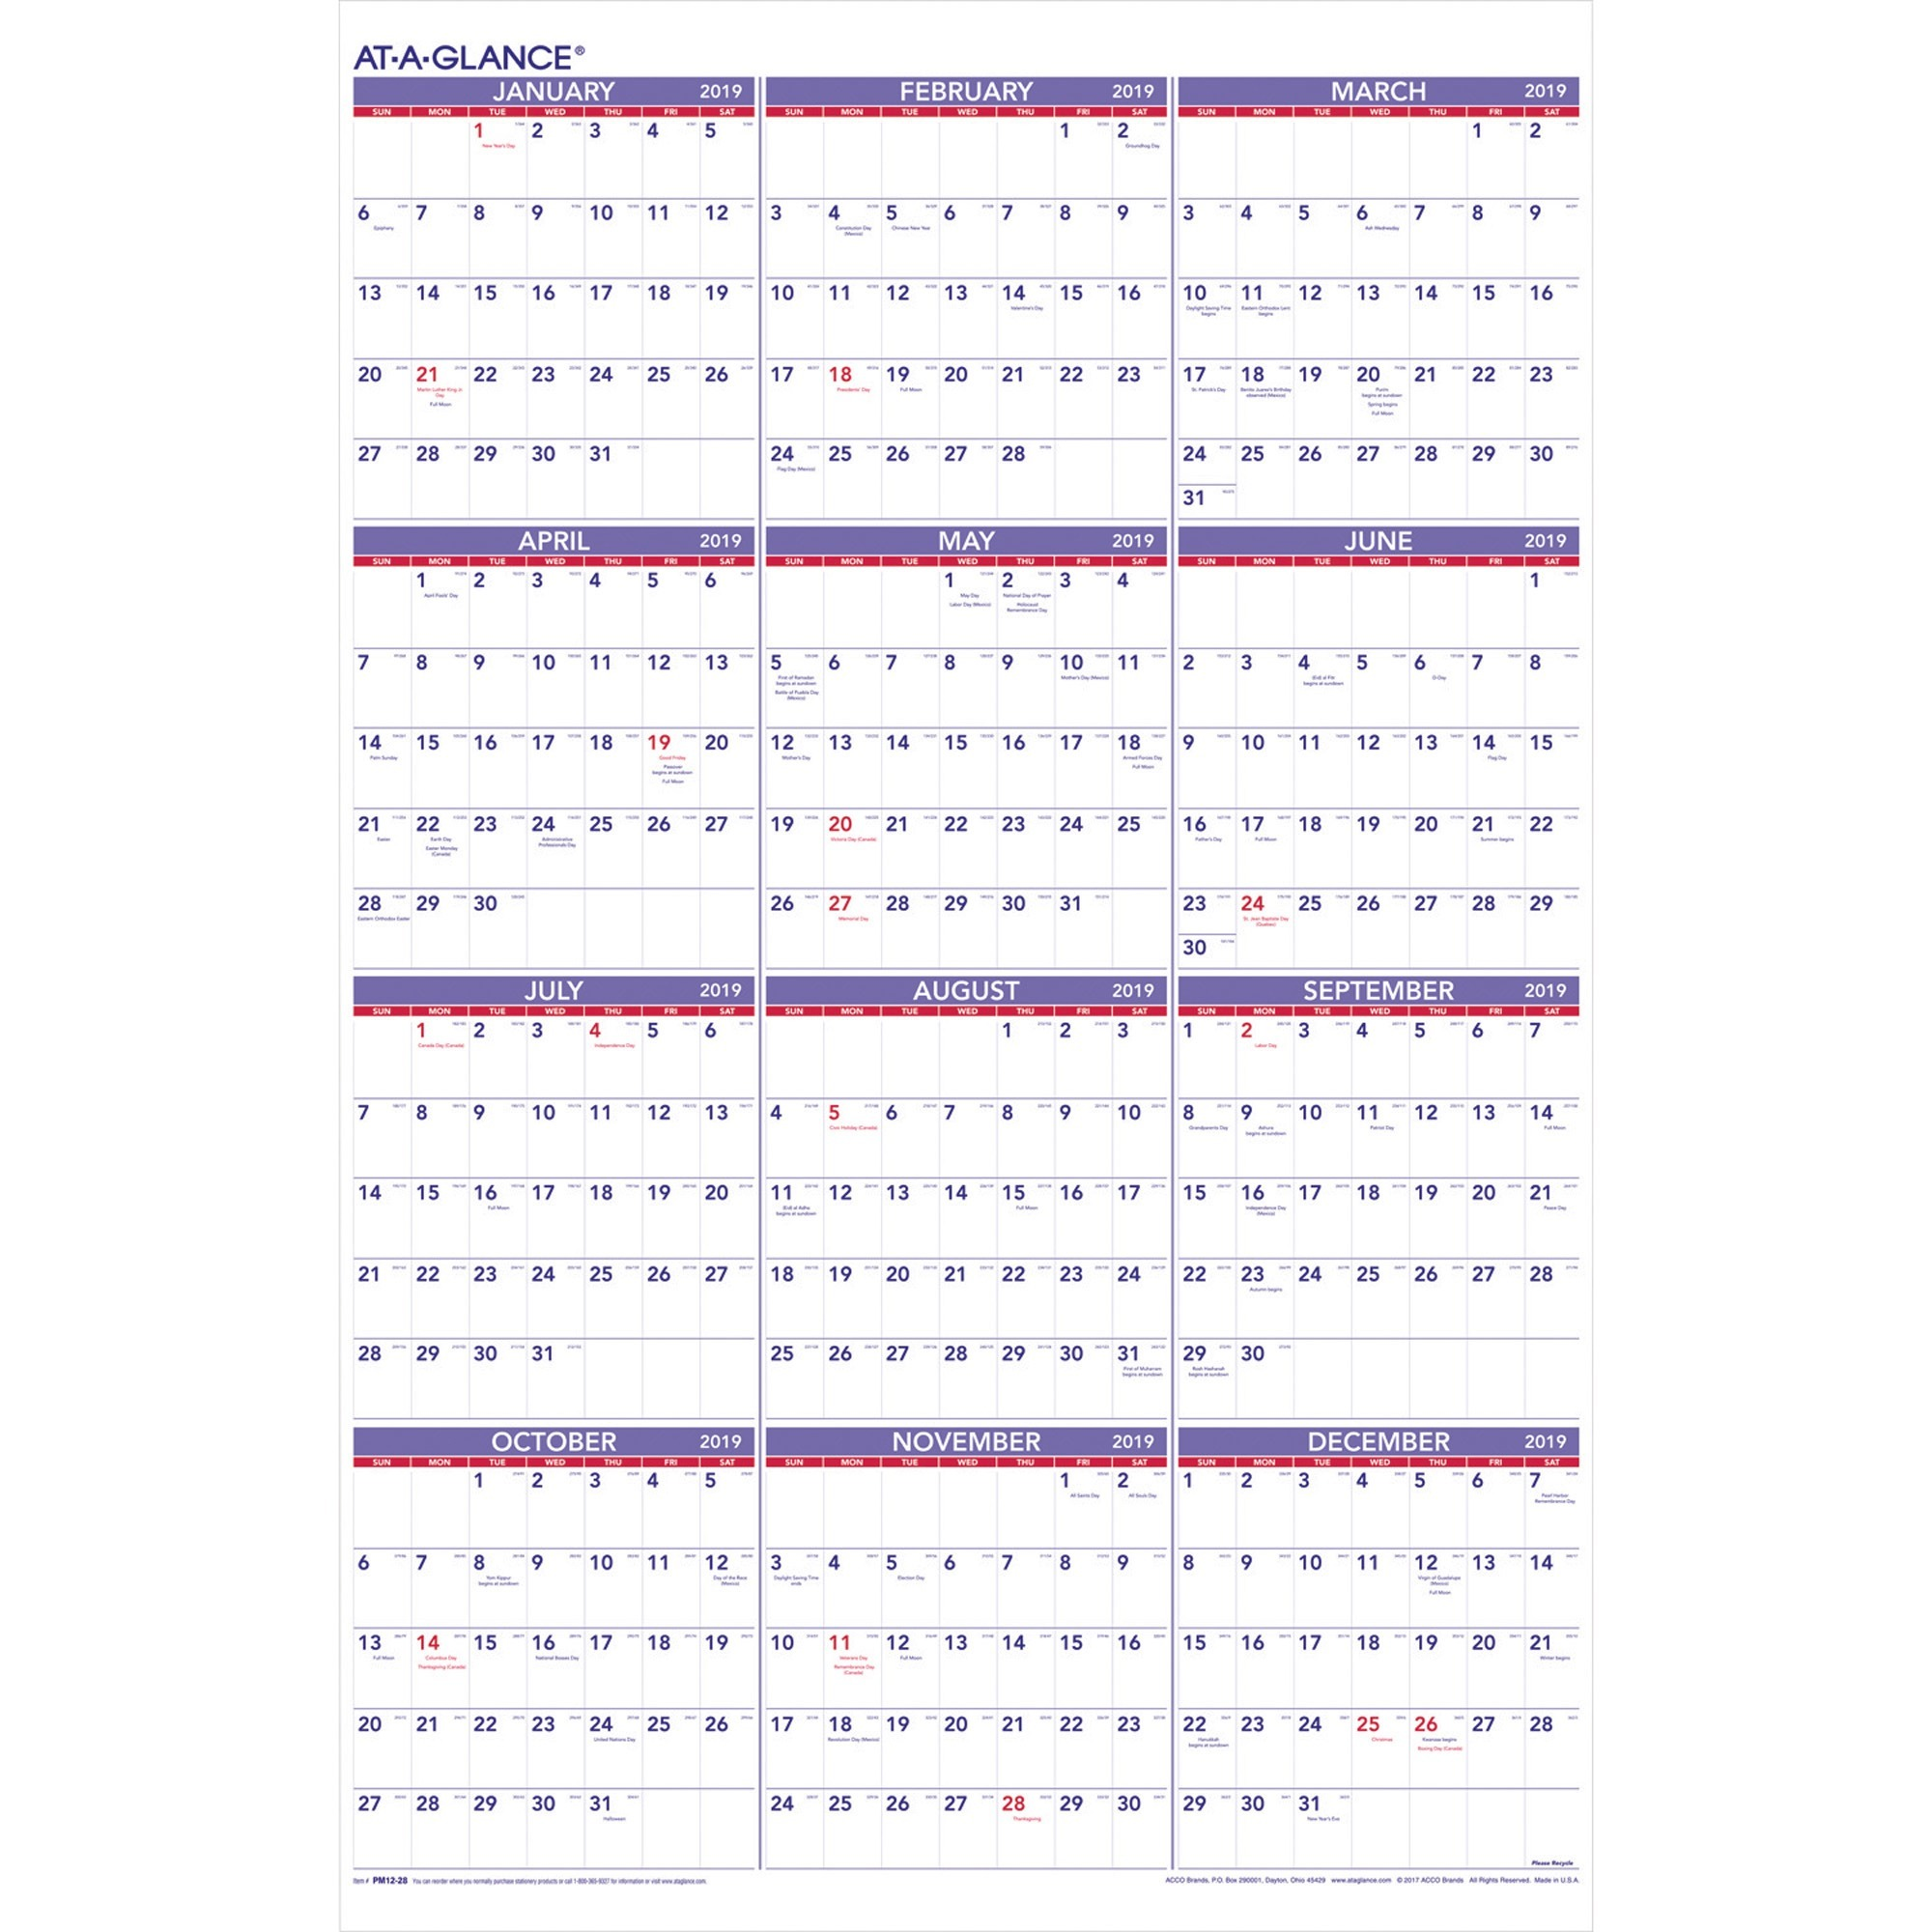 Calendar 2019 Entire Year With Power Surge Technologies Ltd Office Supplies Calendars